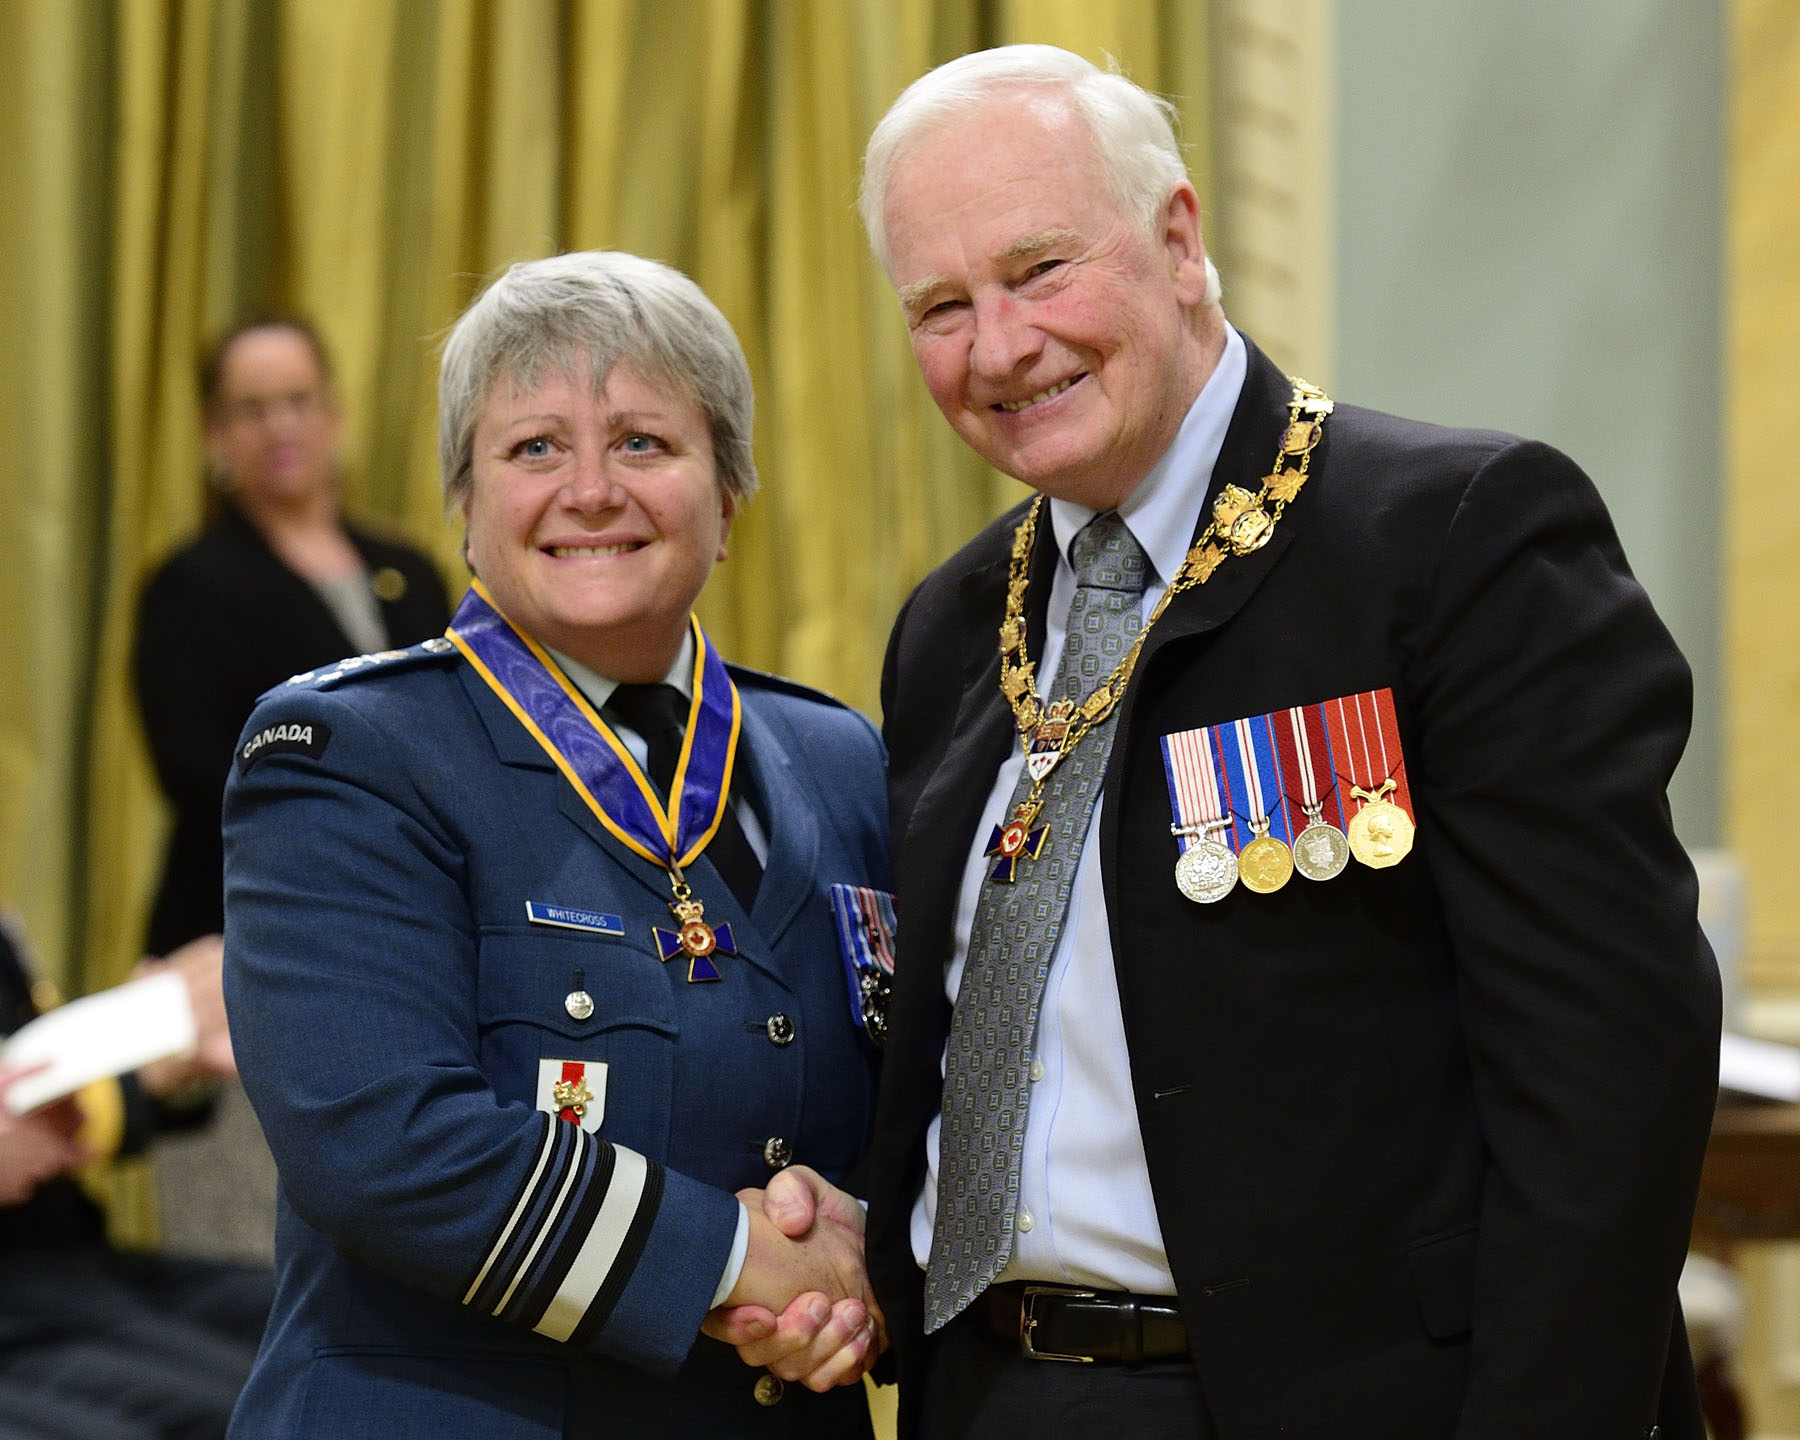 Lieutenant-General Christine Theresa Whitecross, C.M.M., M.S.M., C.D.